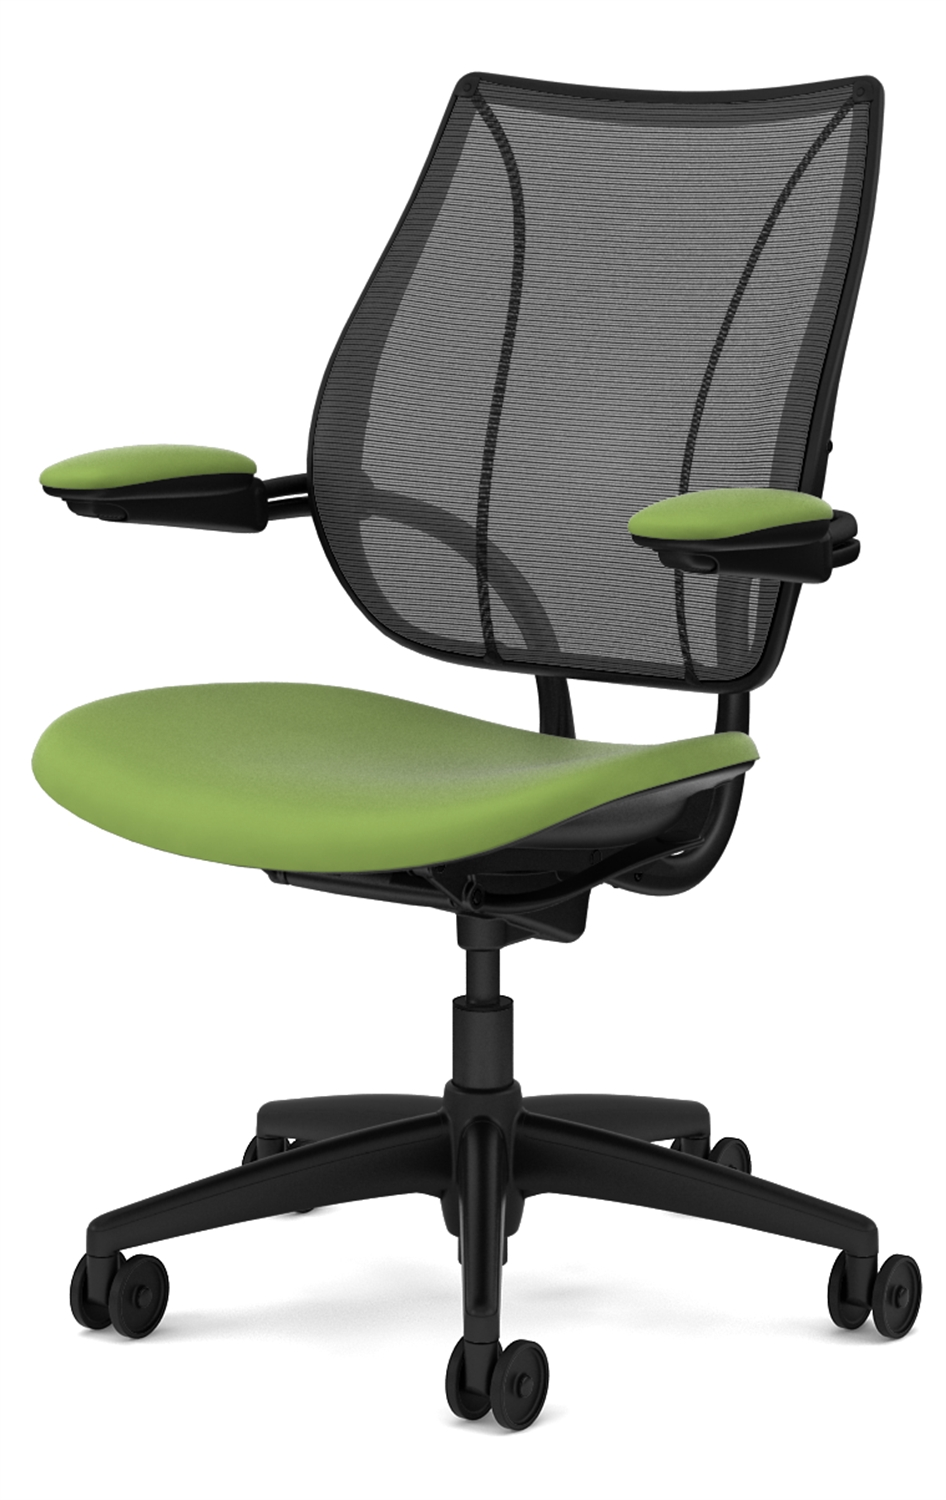 Executive Office Chairs With Adjustable Arms For Widely Used Humanscale Liberty Chair With Adjustable Gel Arms (View 7 of 20)